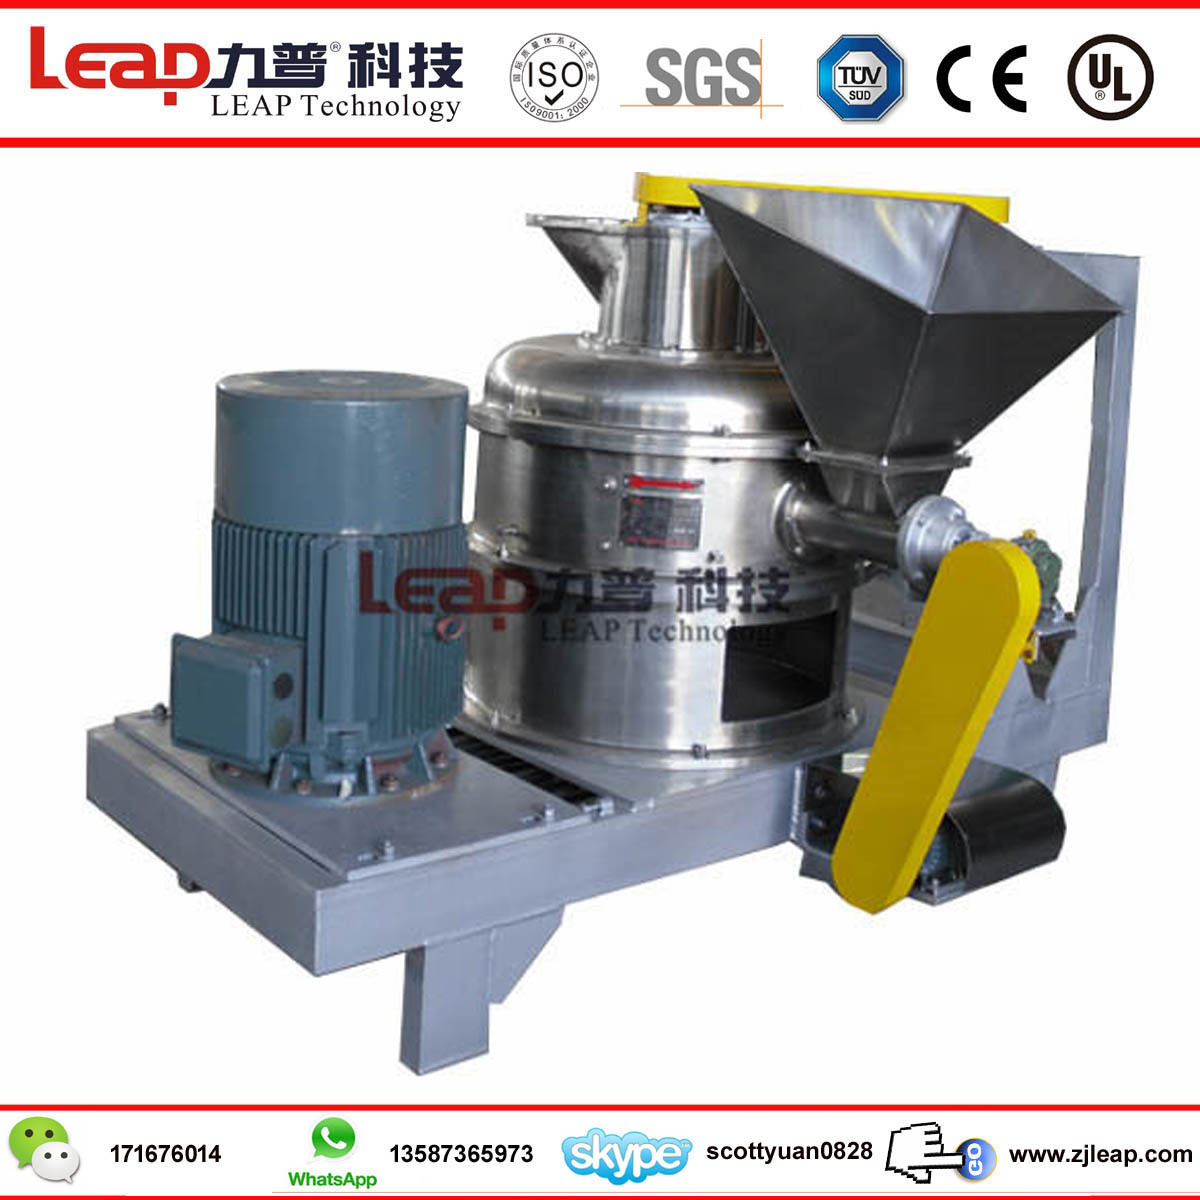 Acm-60 Coconut Cake Grinding Mill with Ce Certificate